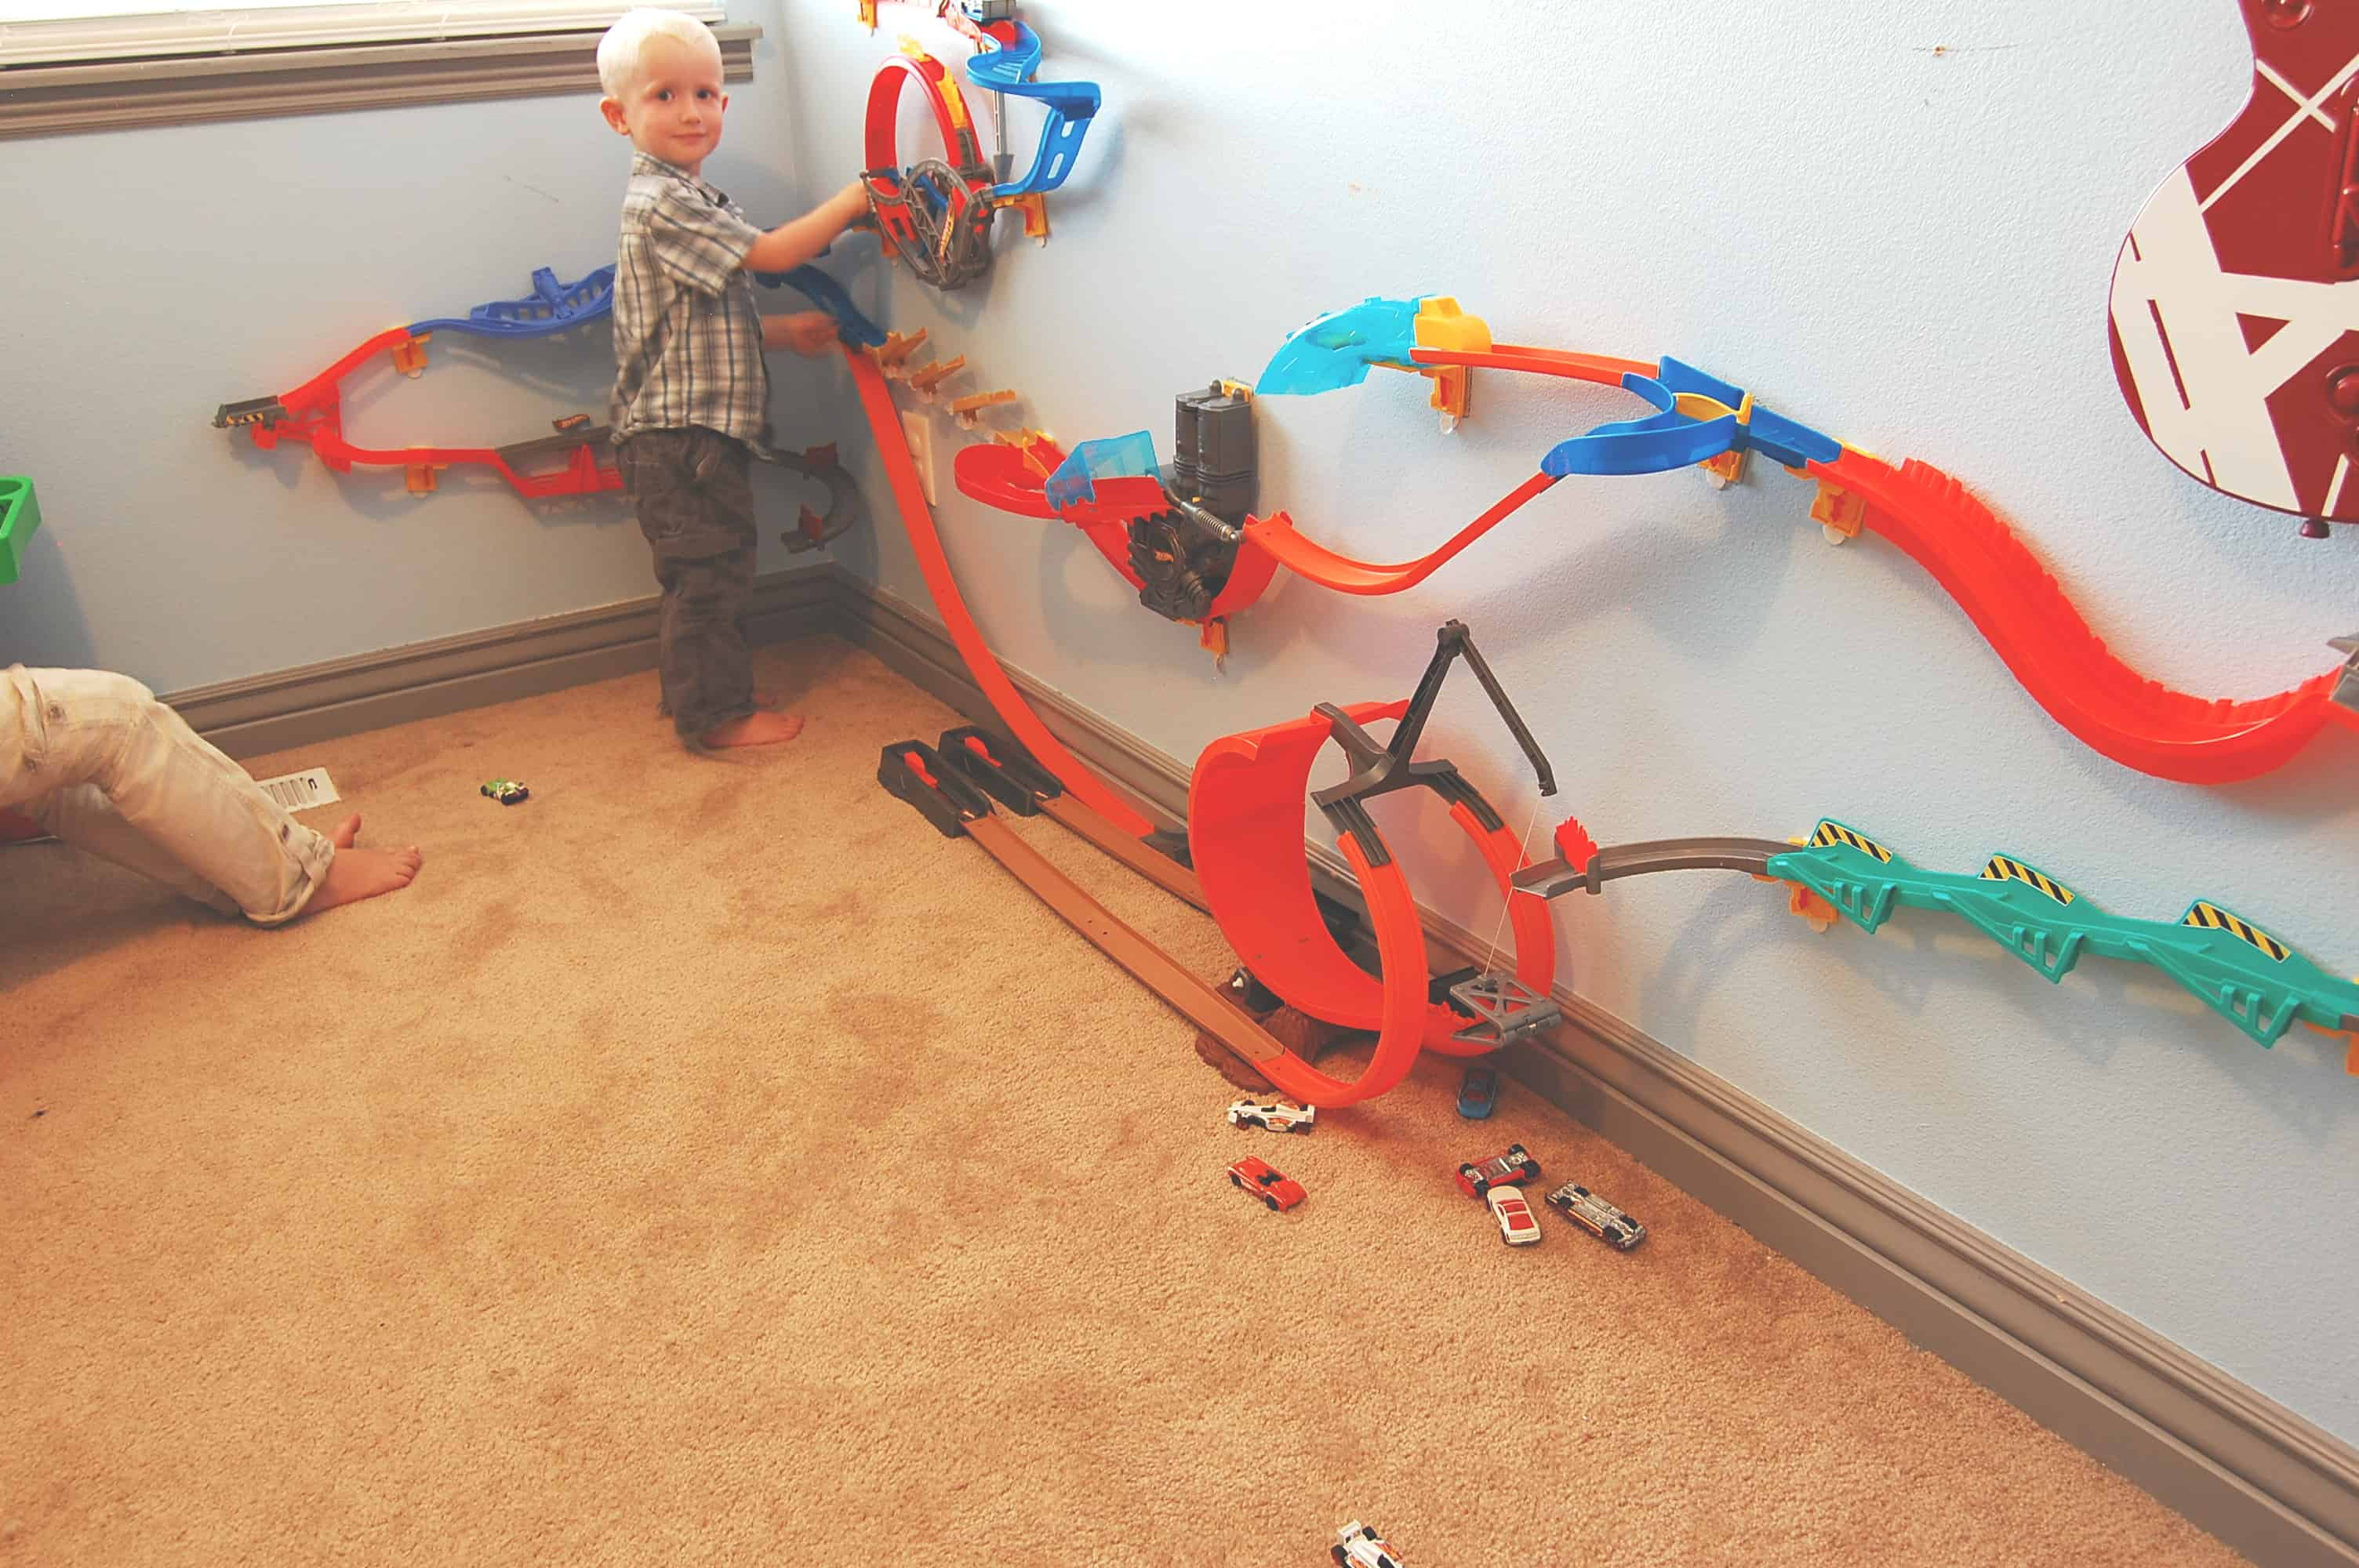 Hot Wheels Wall Tracks Review The Organized Mom